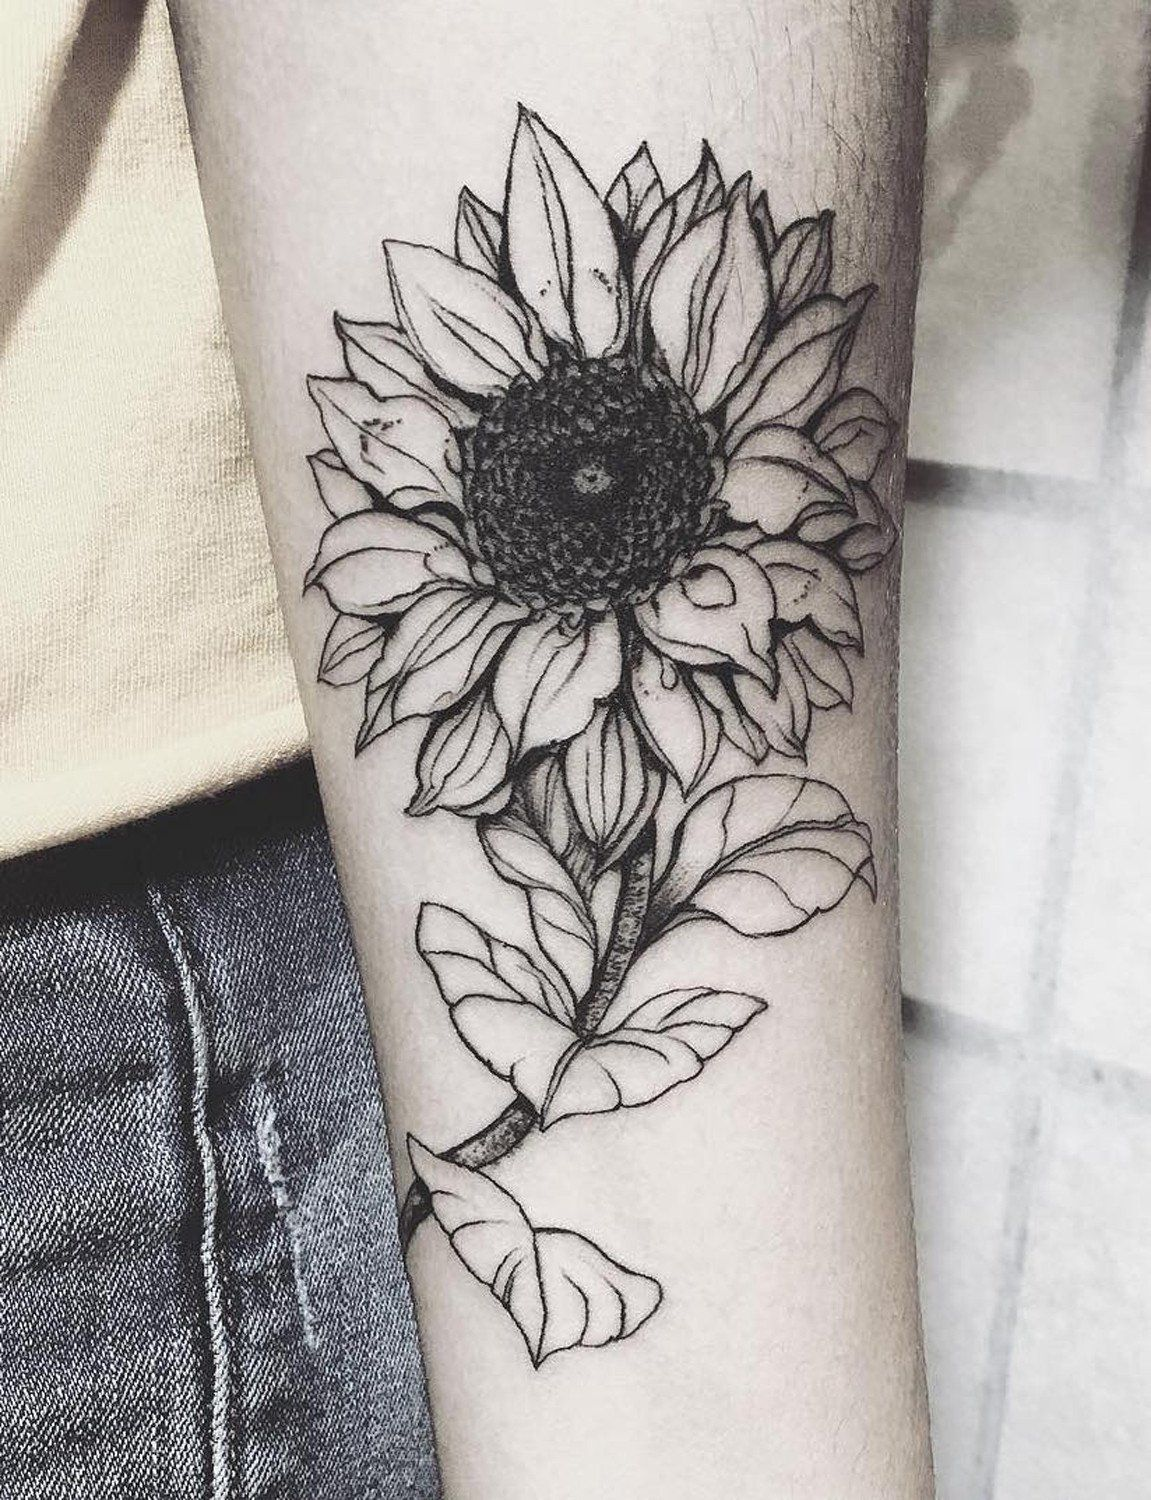 Tattoo name cover up ideas on wrist  of the most boujee sunflower tattoo ideas  arm tattoo ideas arm